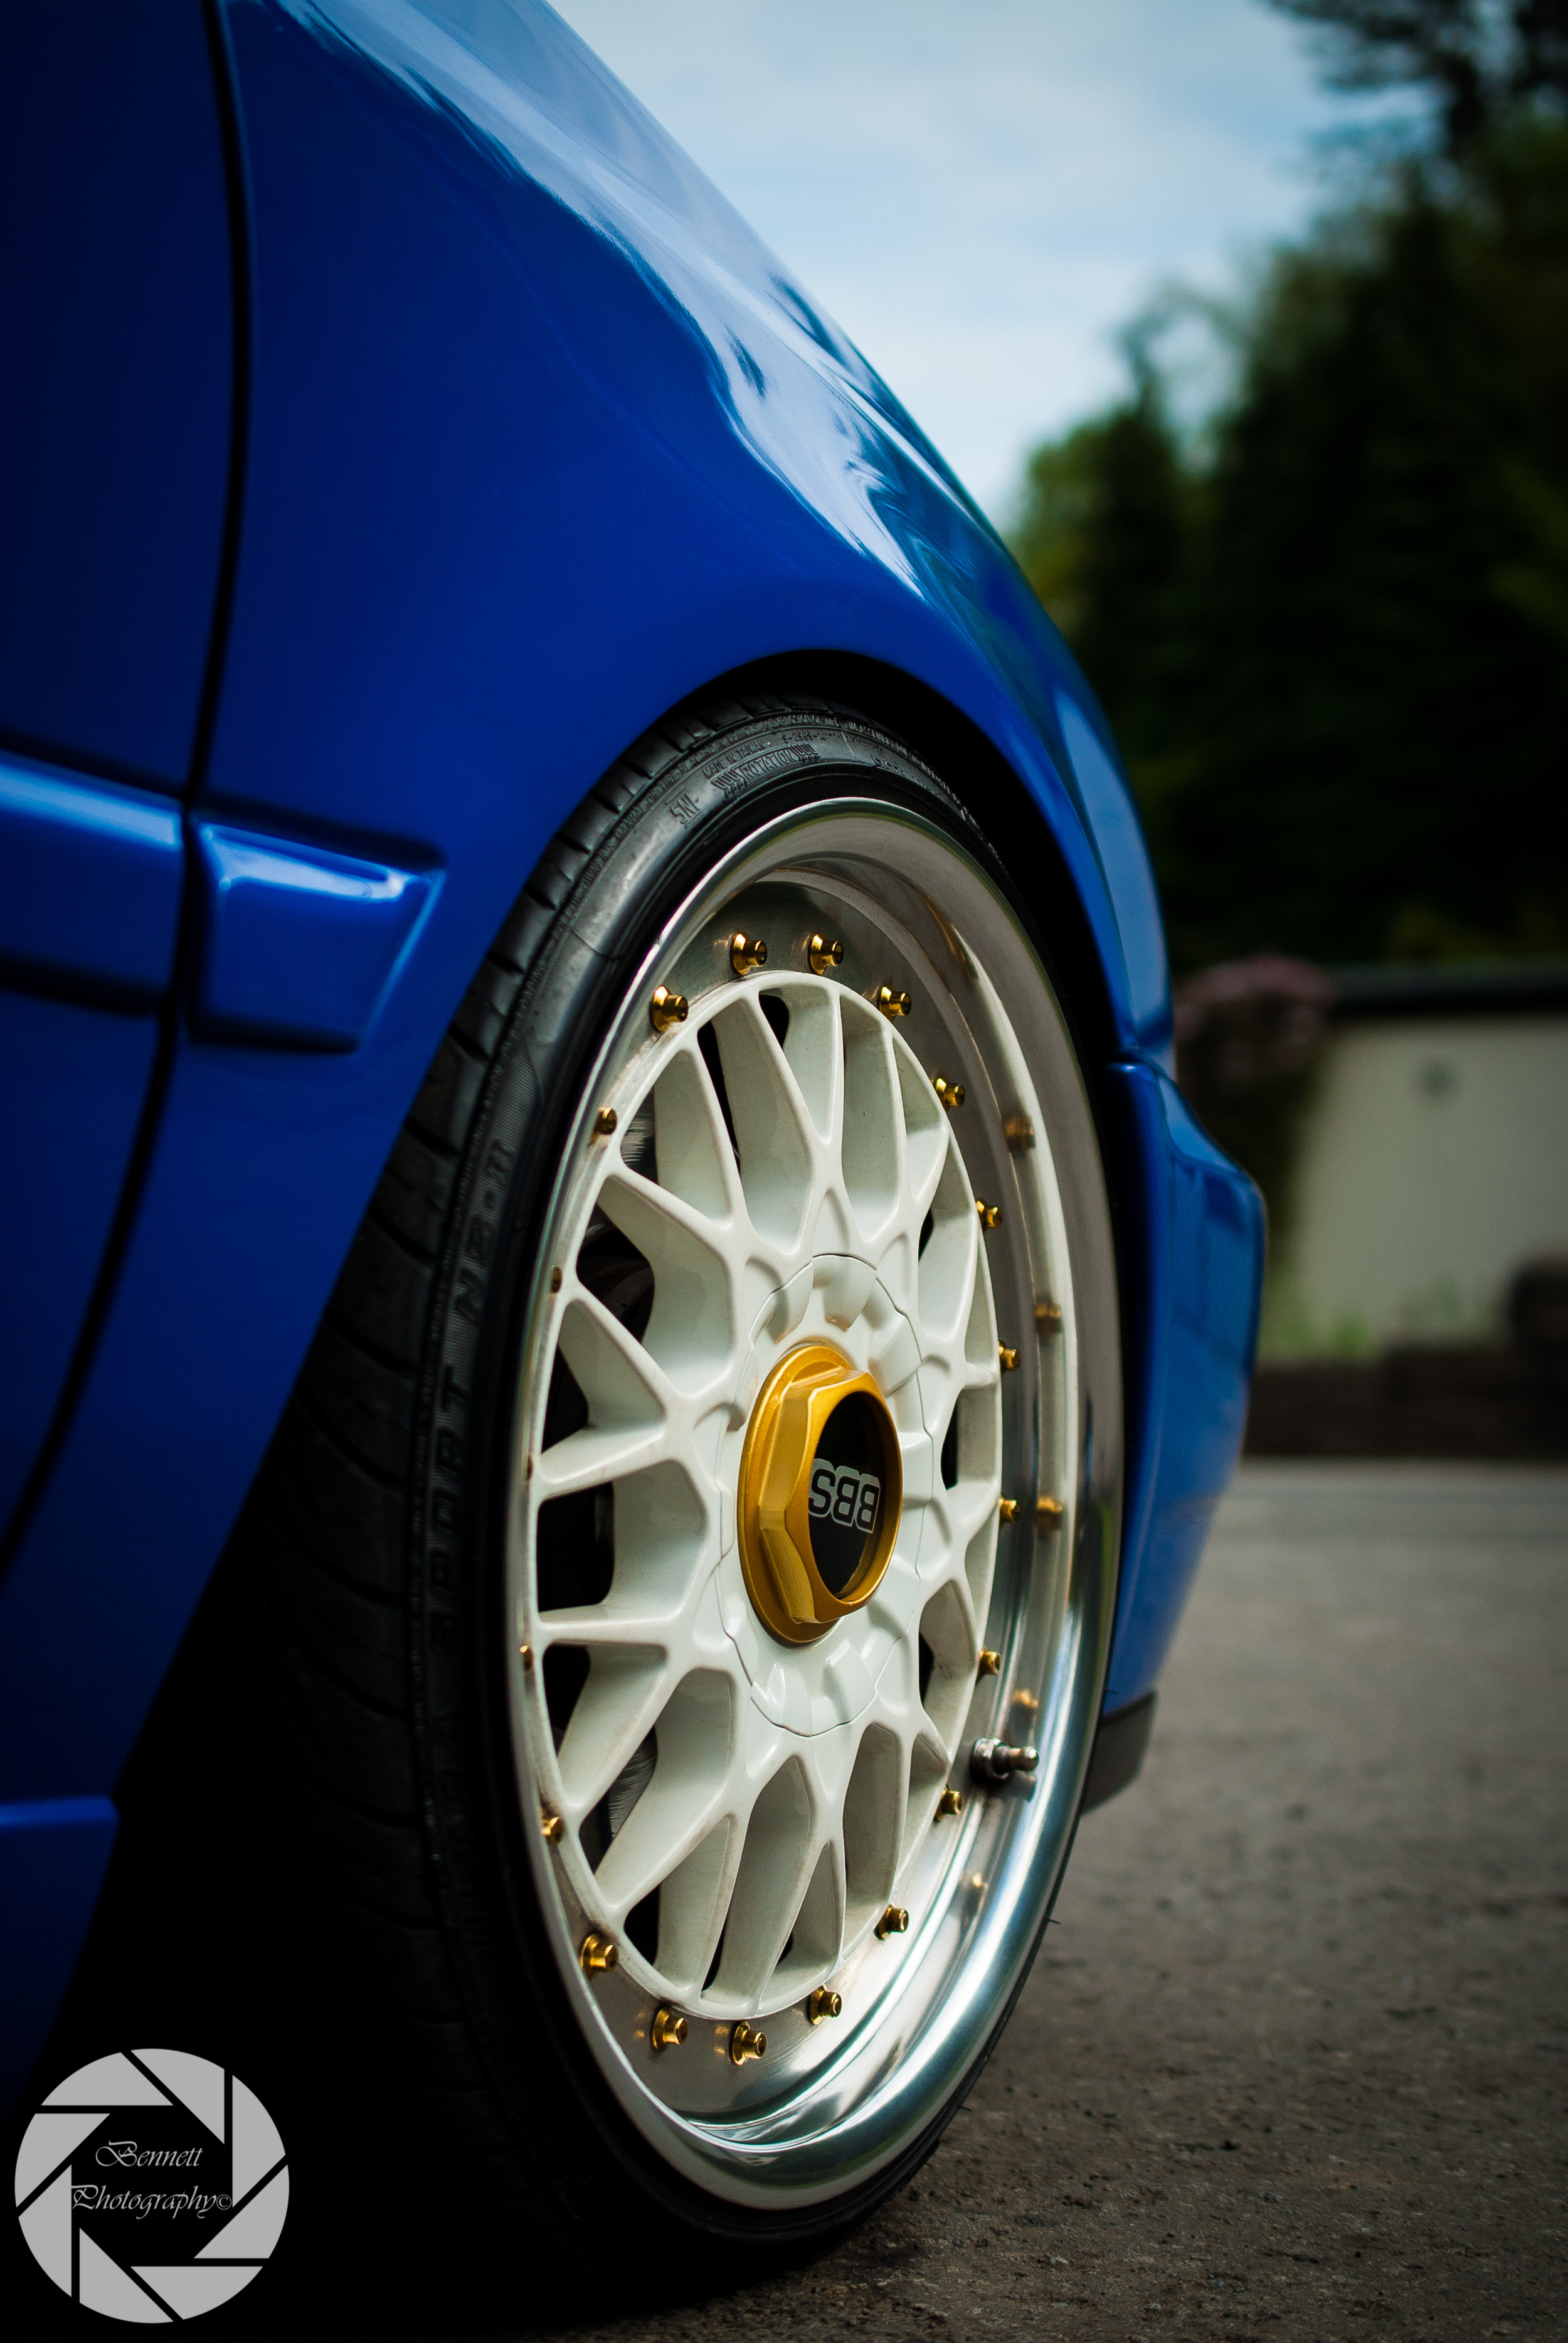 Dan prides himself on his car cleaning, not only does he exhaust himself each weekend on his own car, cleaning hard stubborn areas such as these beautiful BBS split rims, he also is very eager to do a spot of cleaning for his mates car's